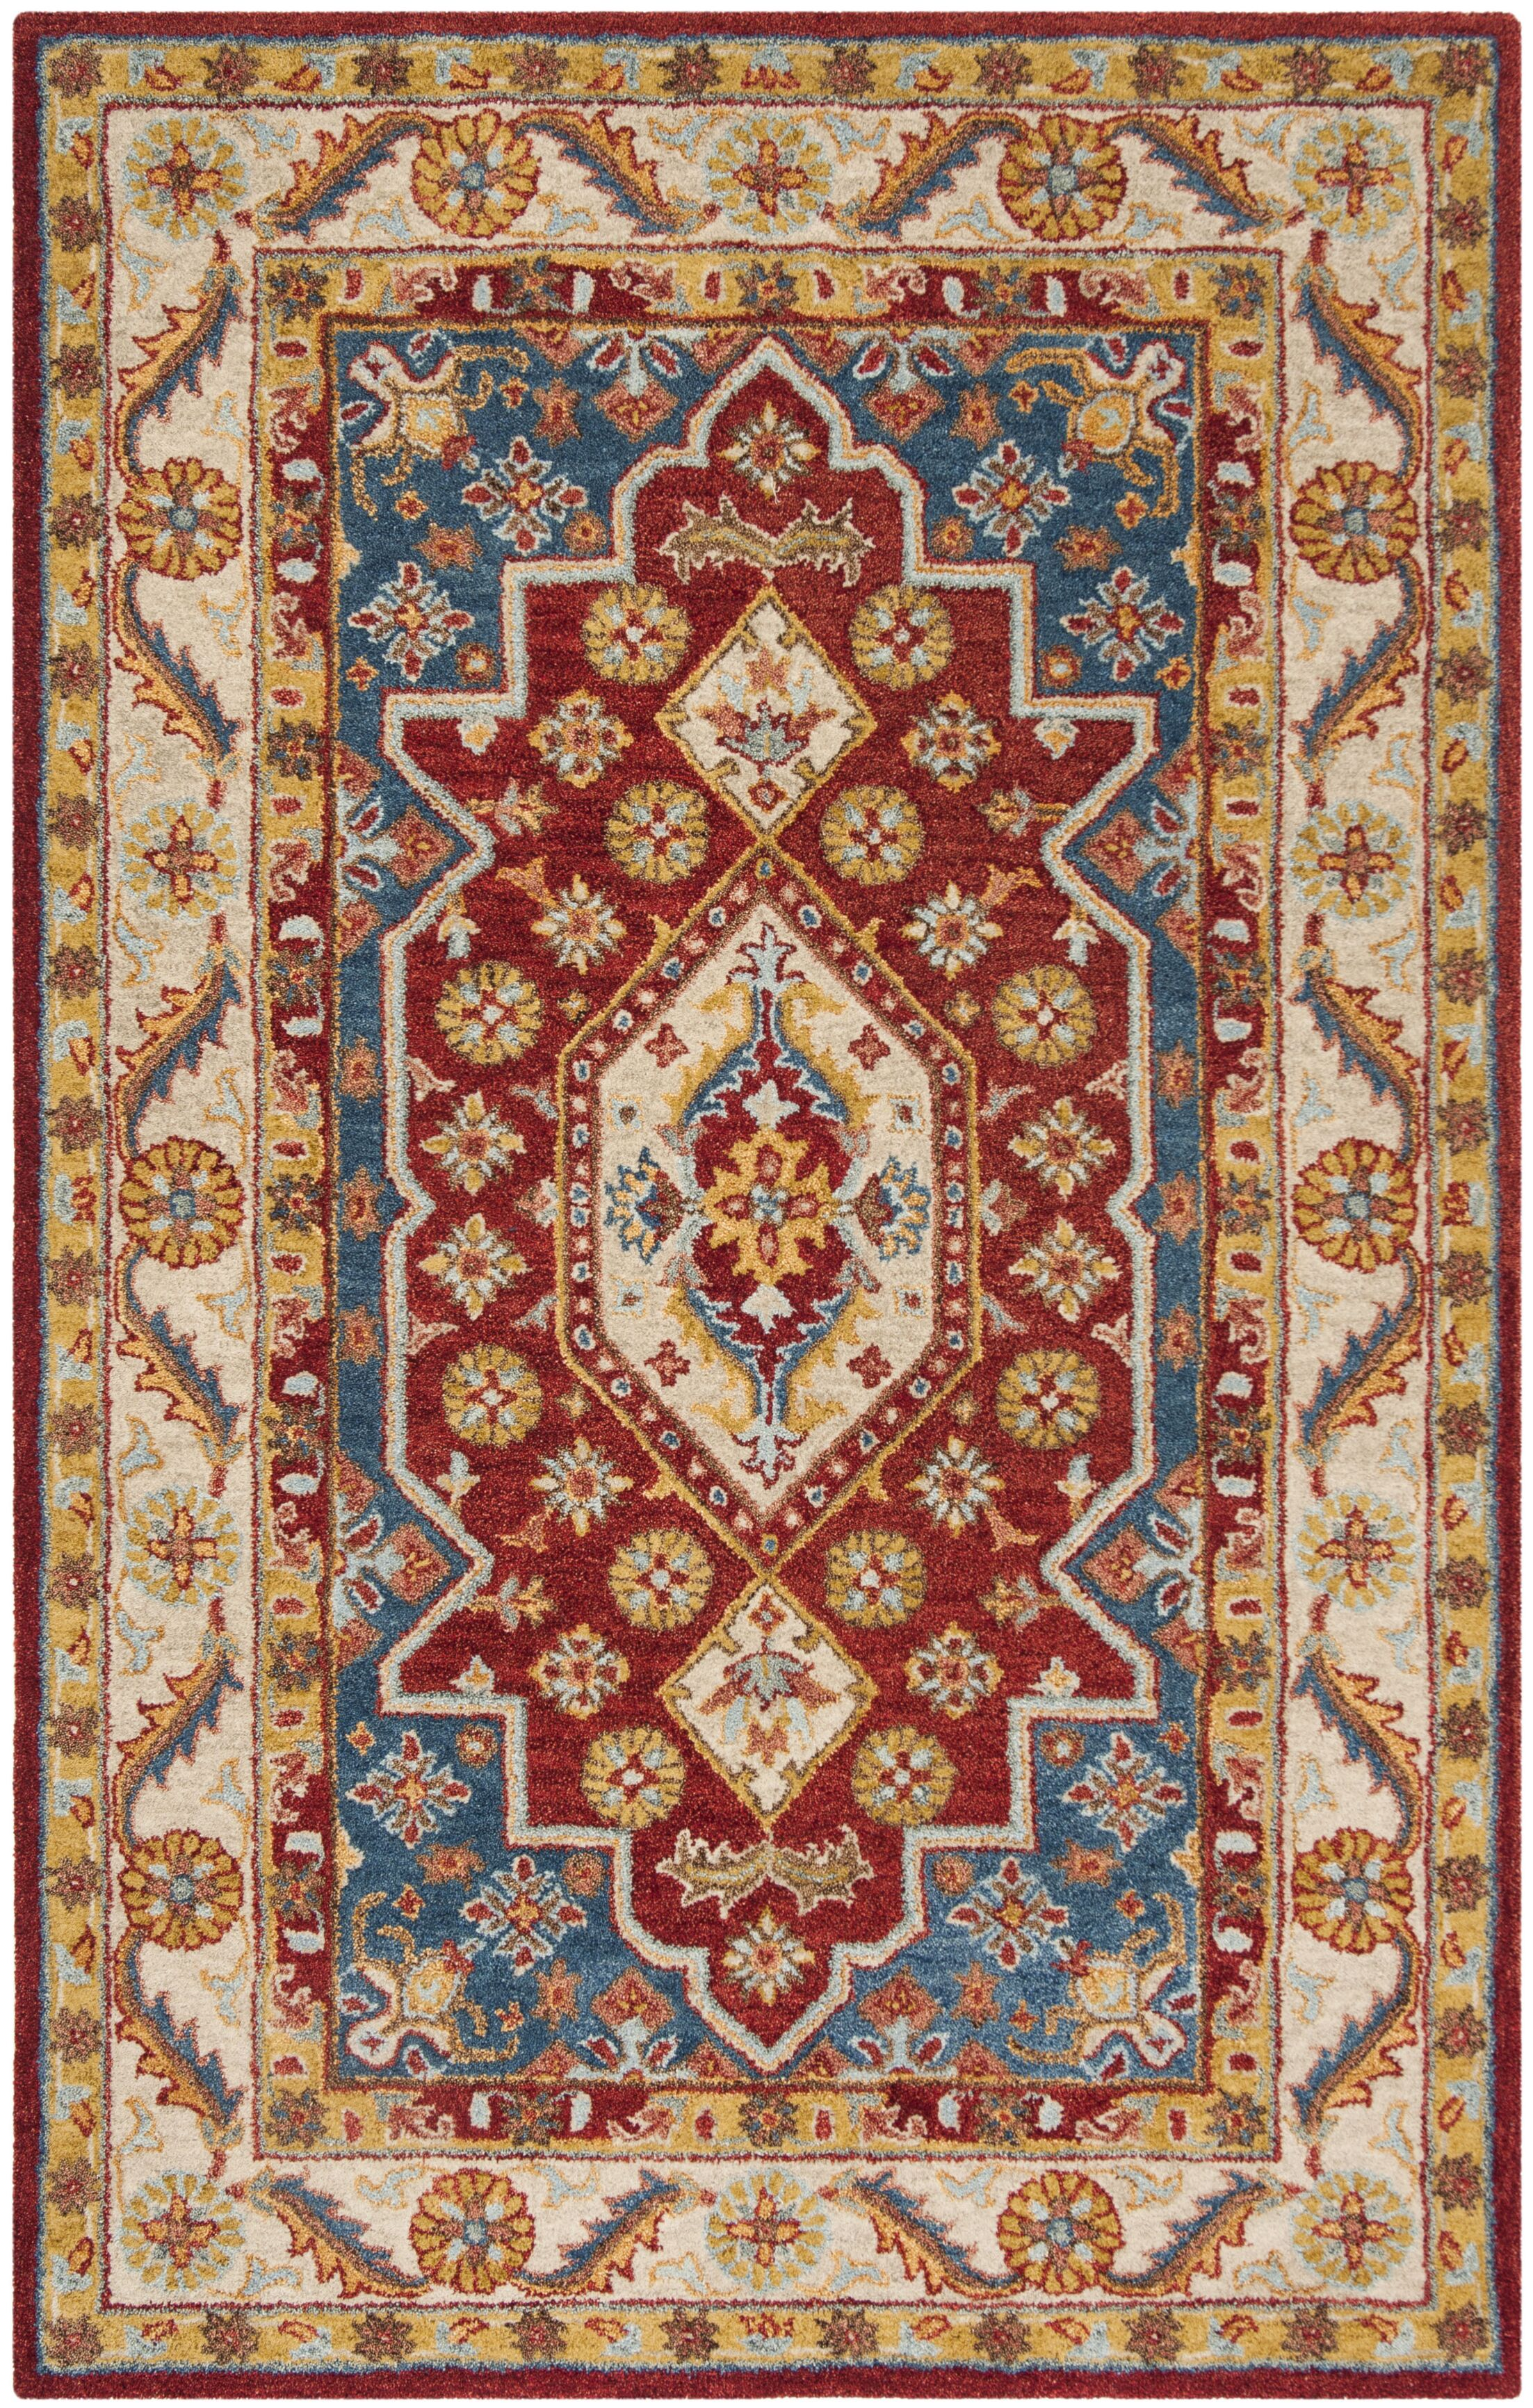 Clymer Antiquity Hand-Tufted Red/Beige Area Rug Rug Size: Rectangle 5' x 8'